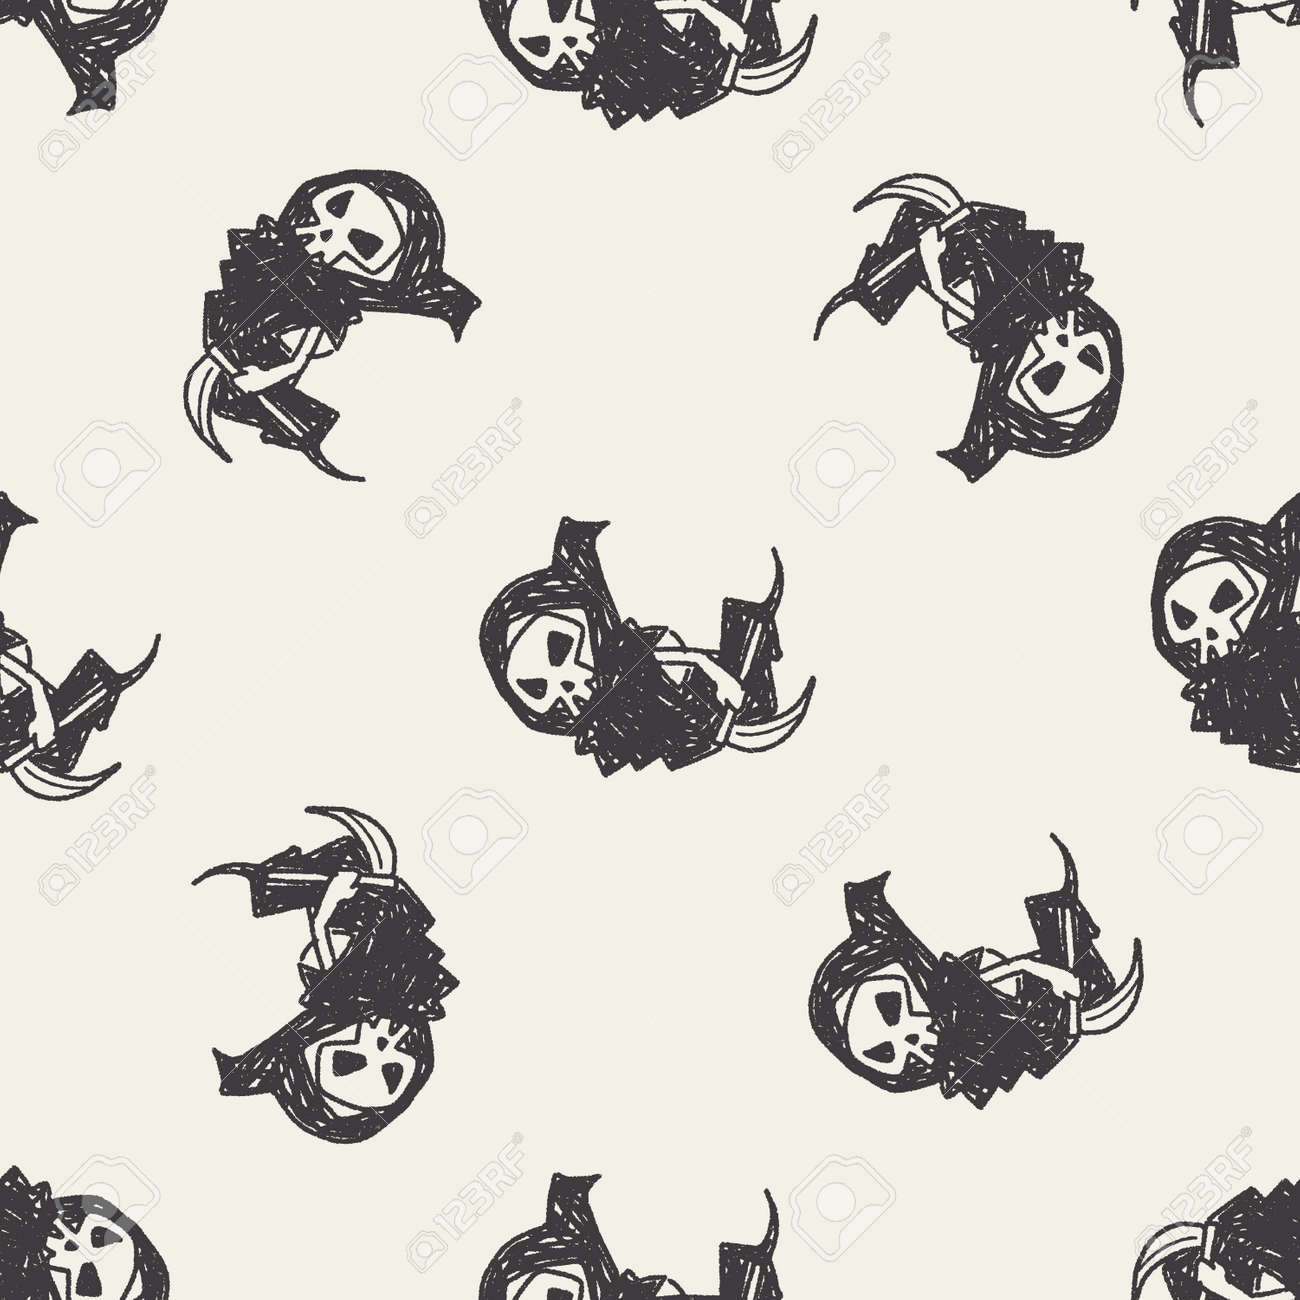 hight resolution of grim reaper doodle seamless pattern background stock vector 40715518